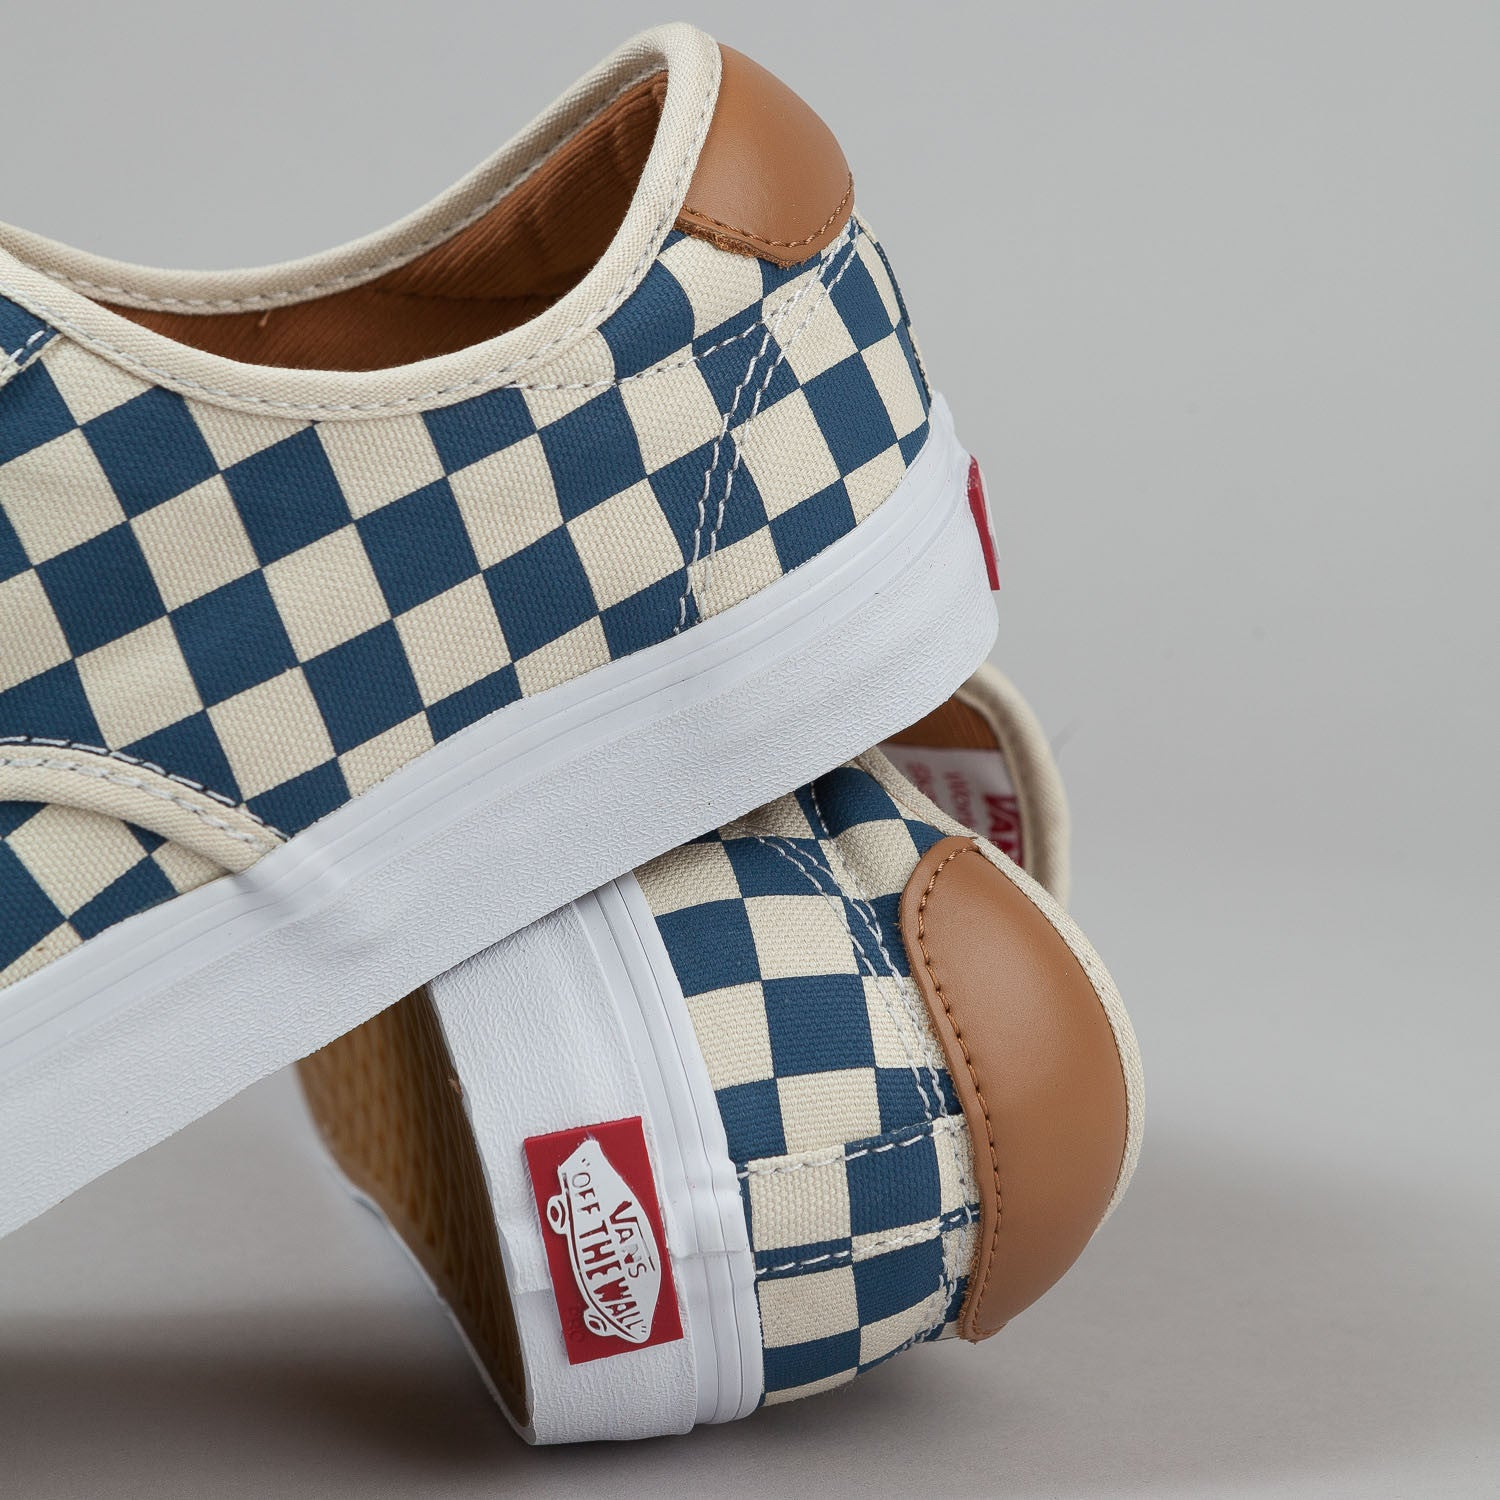 Vans Chima Ferguson Pro Shoes - (Checkerboard) Tan / Blue